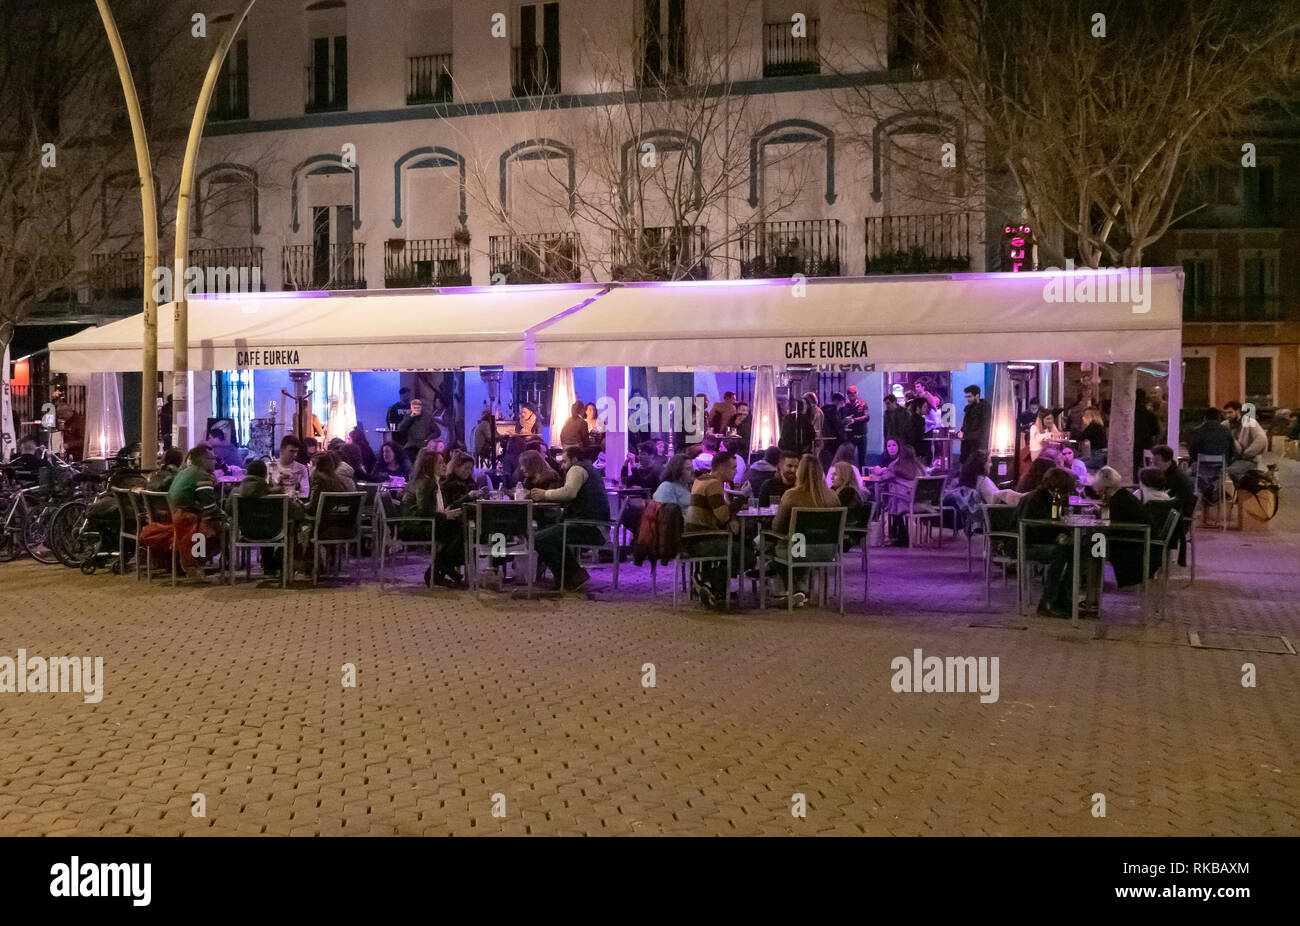 People enjoying the evening at Cafe Eureka in Alameda de Hercules in Seville, Spain - Stock Image